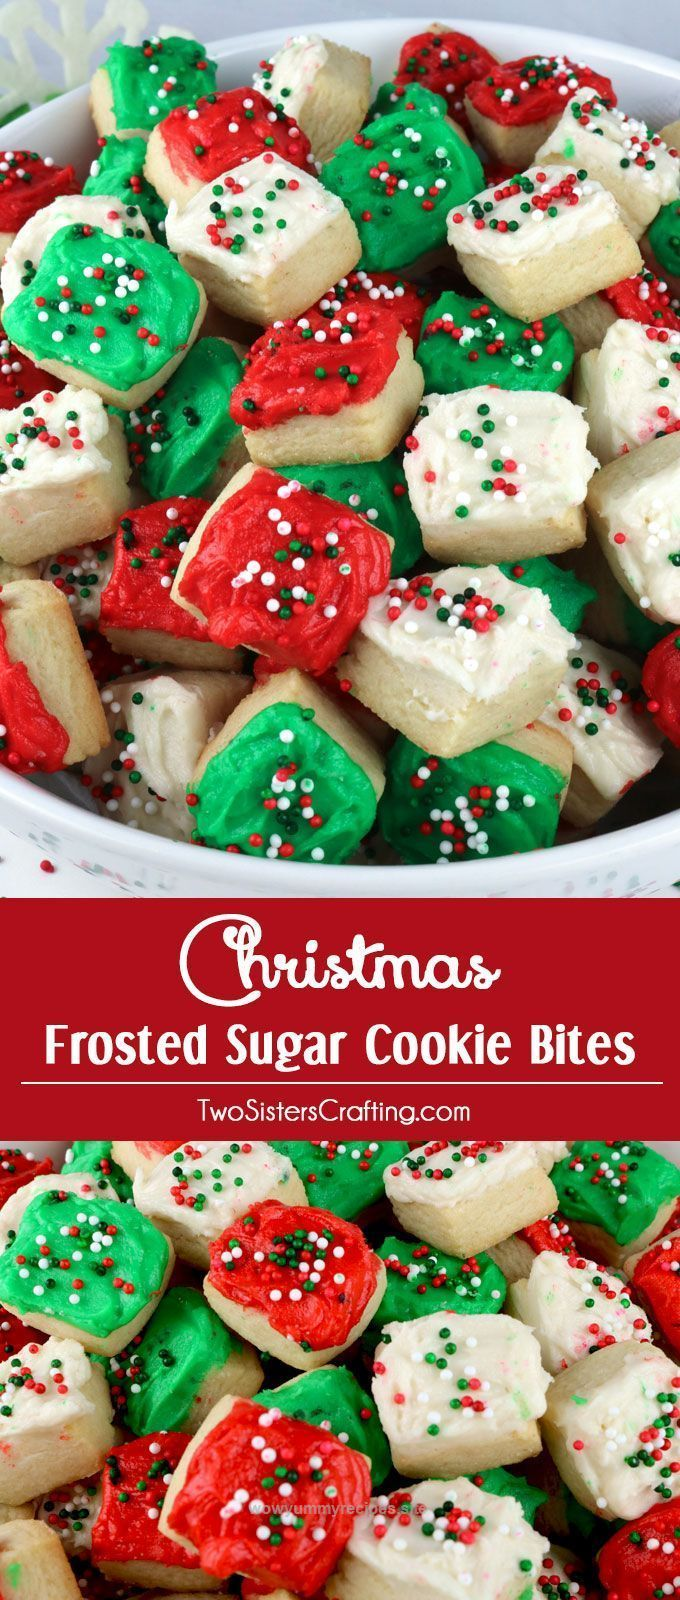 Check out this Christmas Sugar Cookie Bites – these yummy Christmas Treats are so easy to decorate that even the youngest family member can join in on the fun.  They are a super delicious bite-sized ta ..